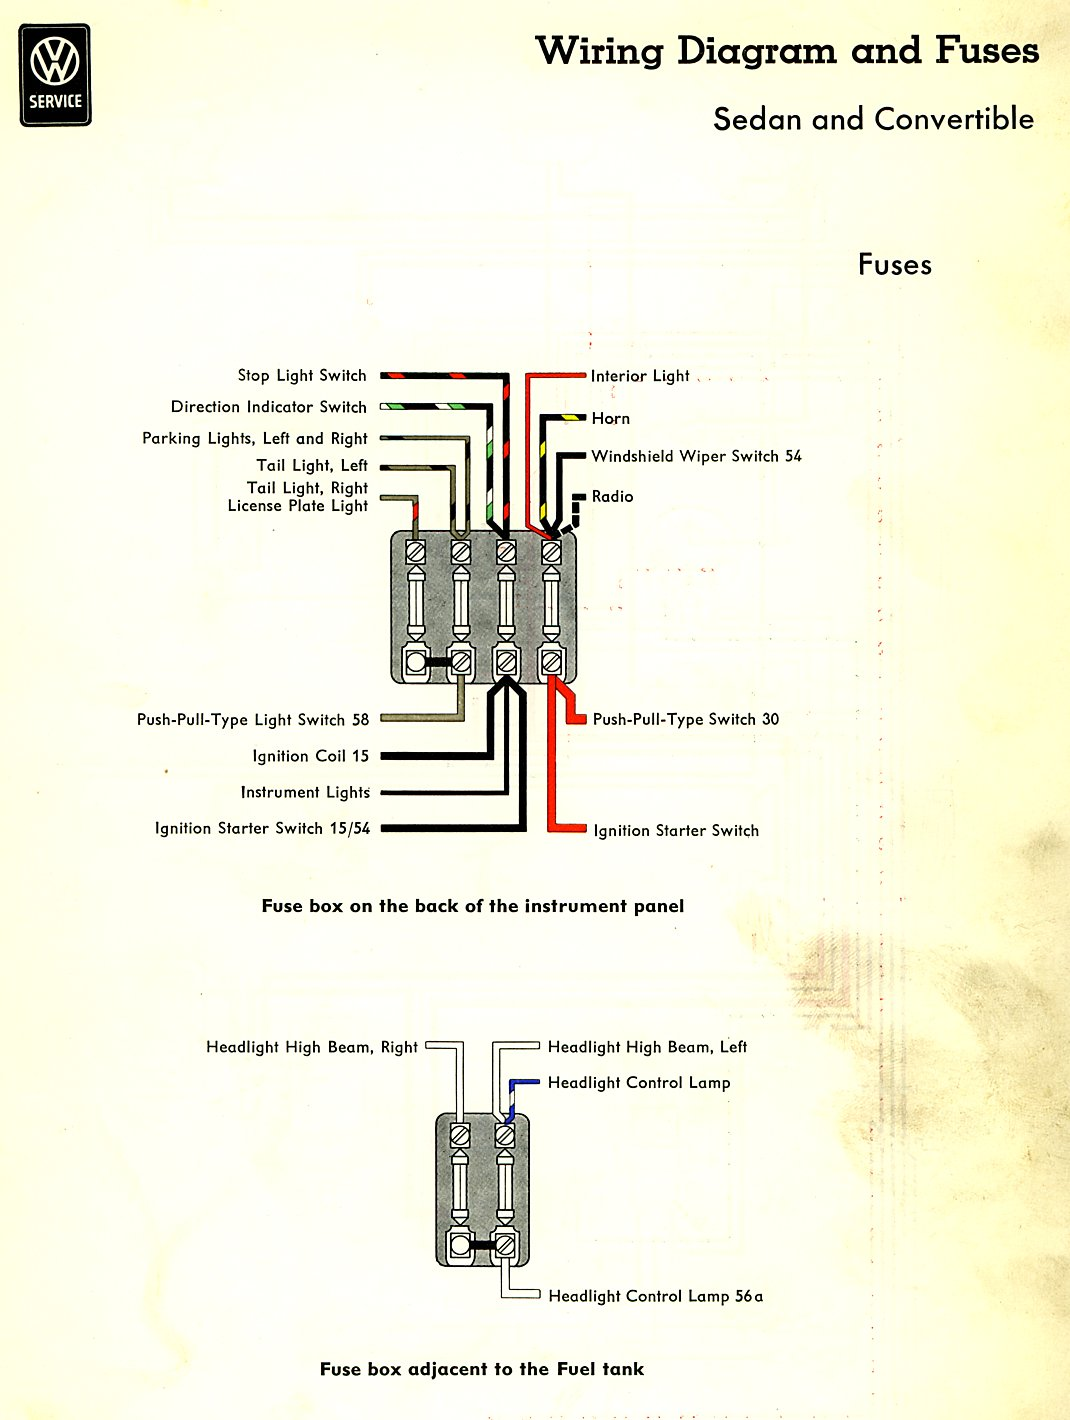 1975 Volkswagen Wiring Diagram Library 74 Beetle Thesamba Com Type 1 Diagrams Rh 1969 1974